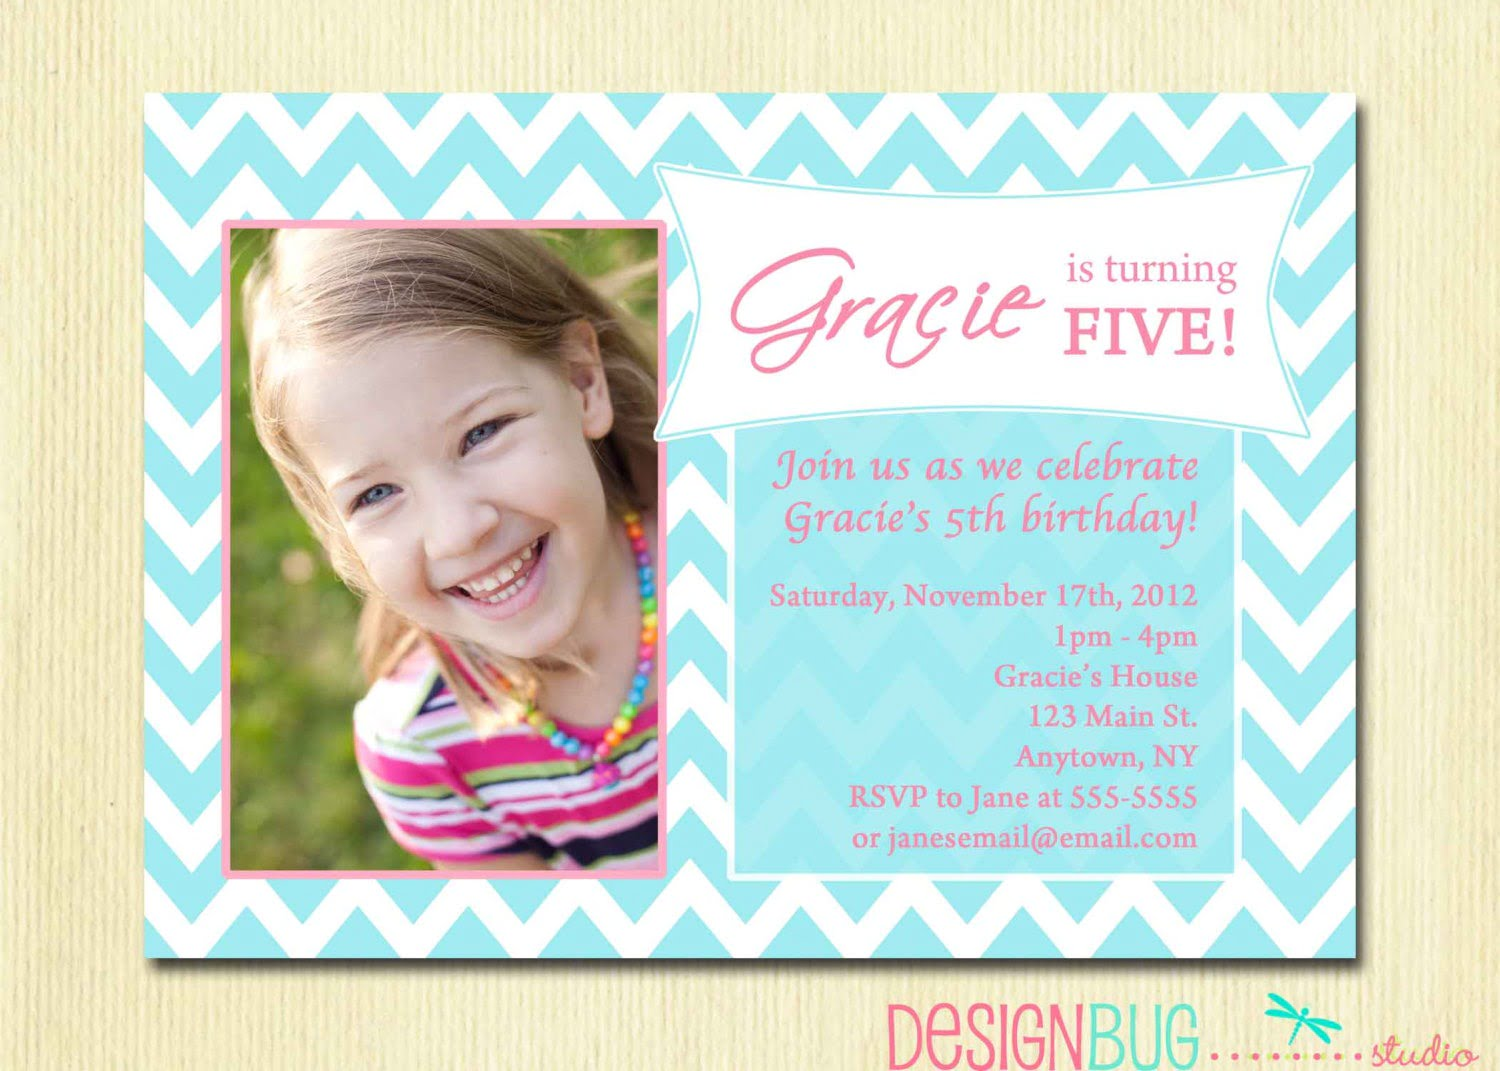 One Year Old Birthday Party Invitations Luxury Invitation For One